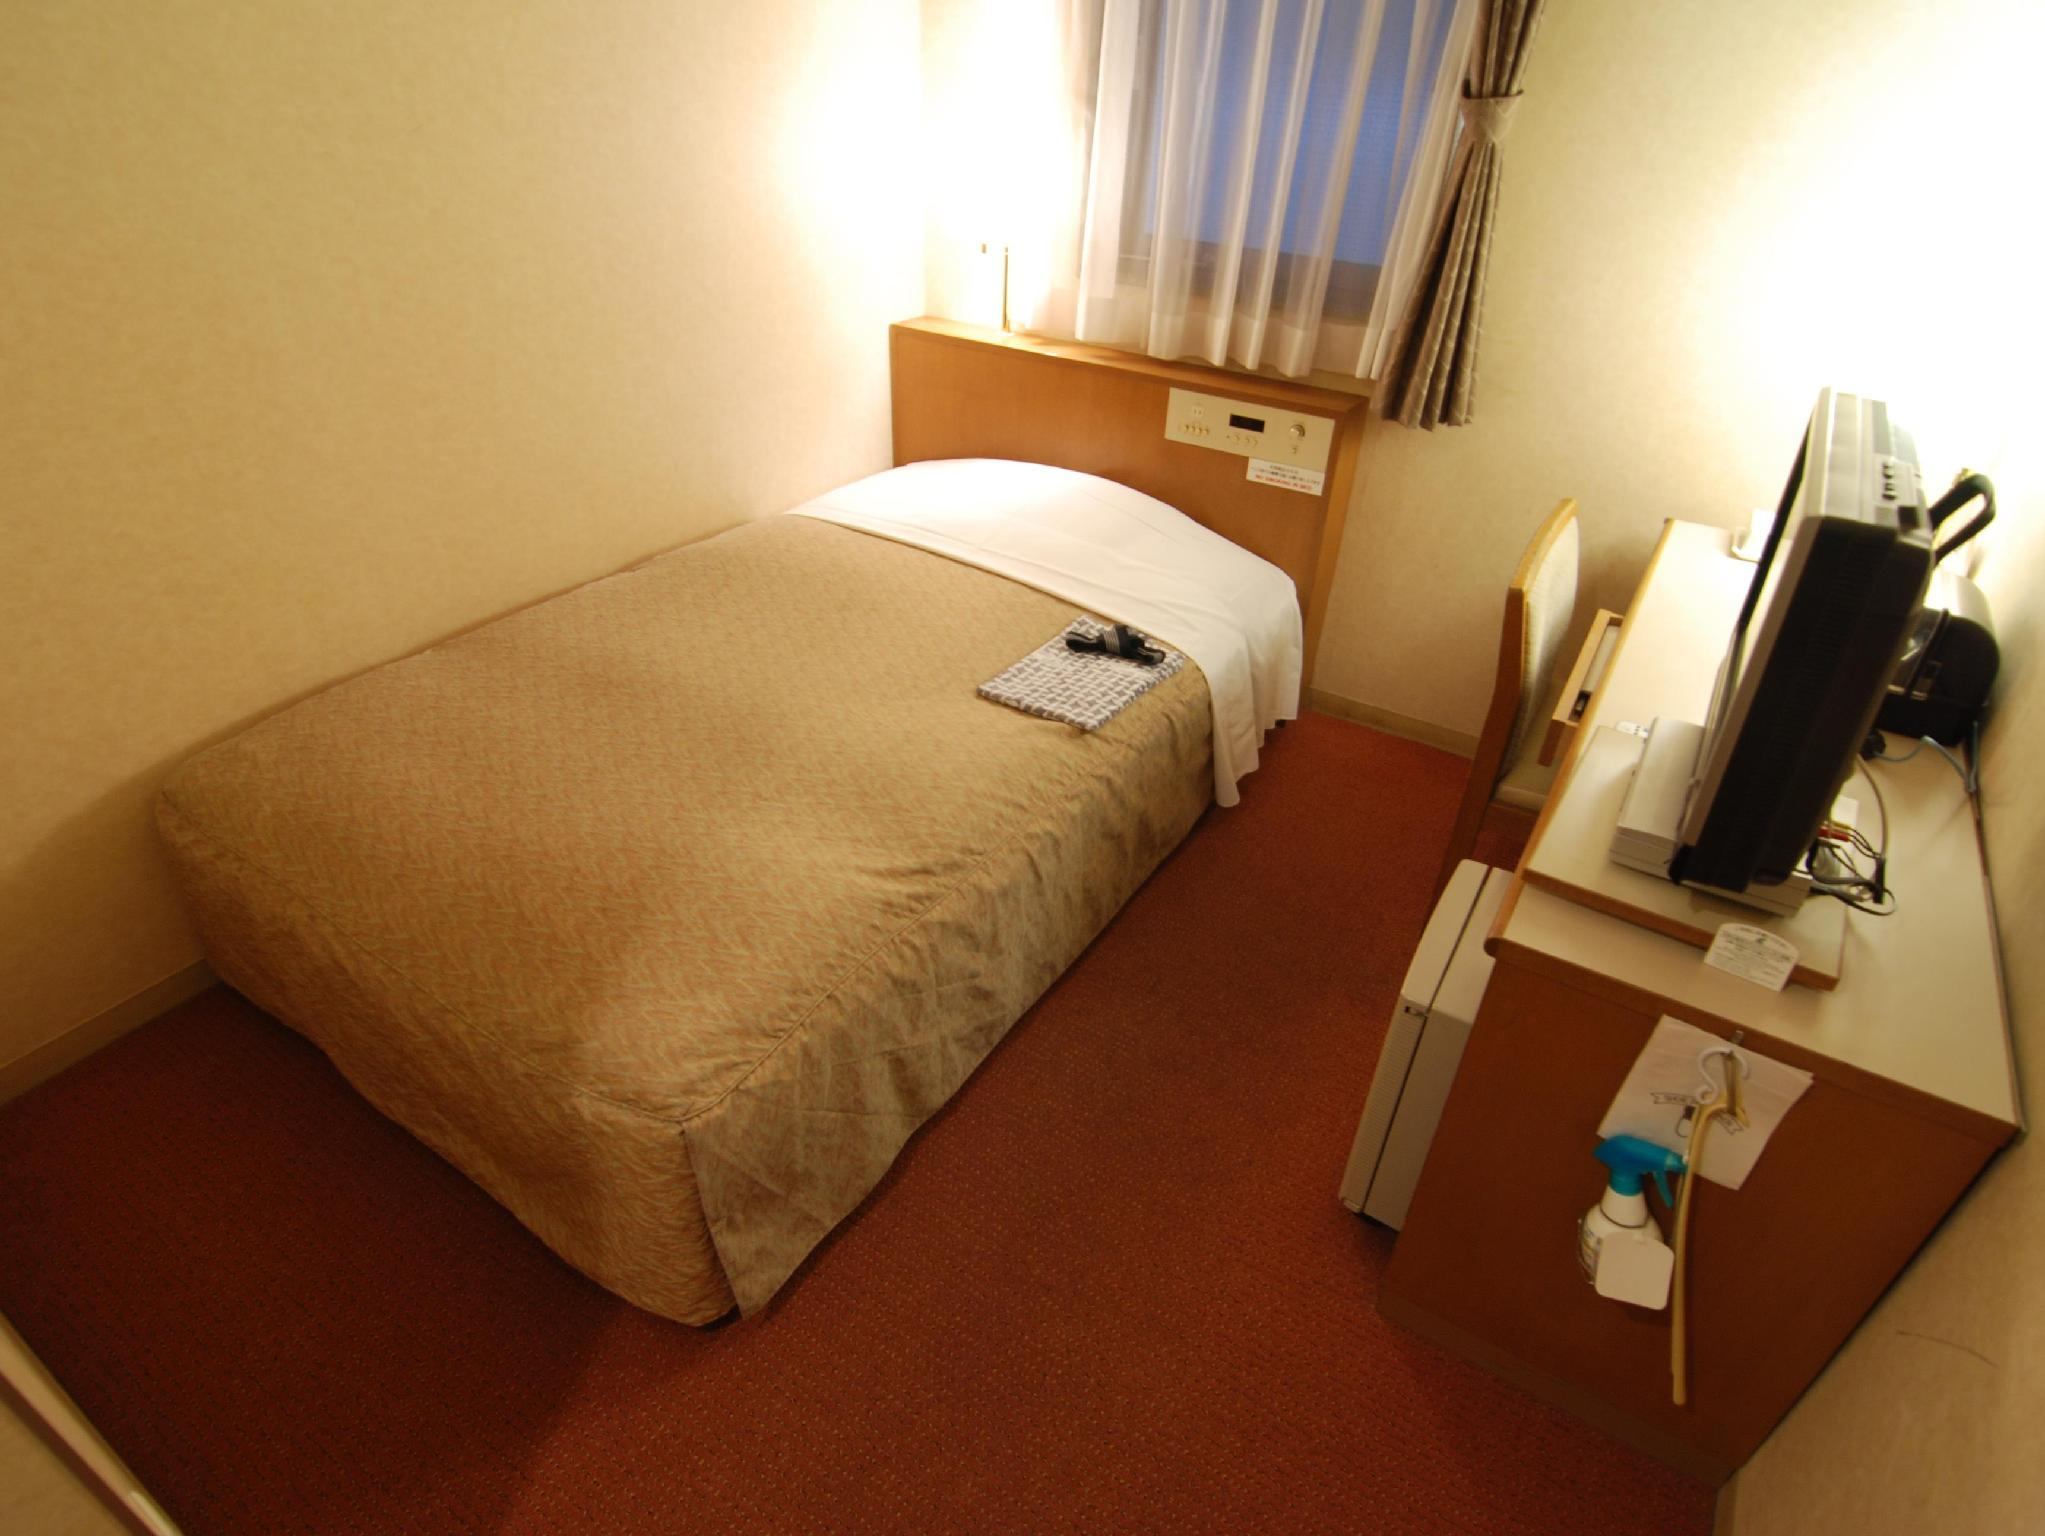 Small Double Room - Smoking, Late Check-Out Until 12:00 PM